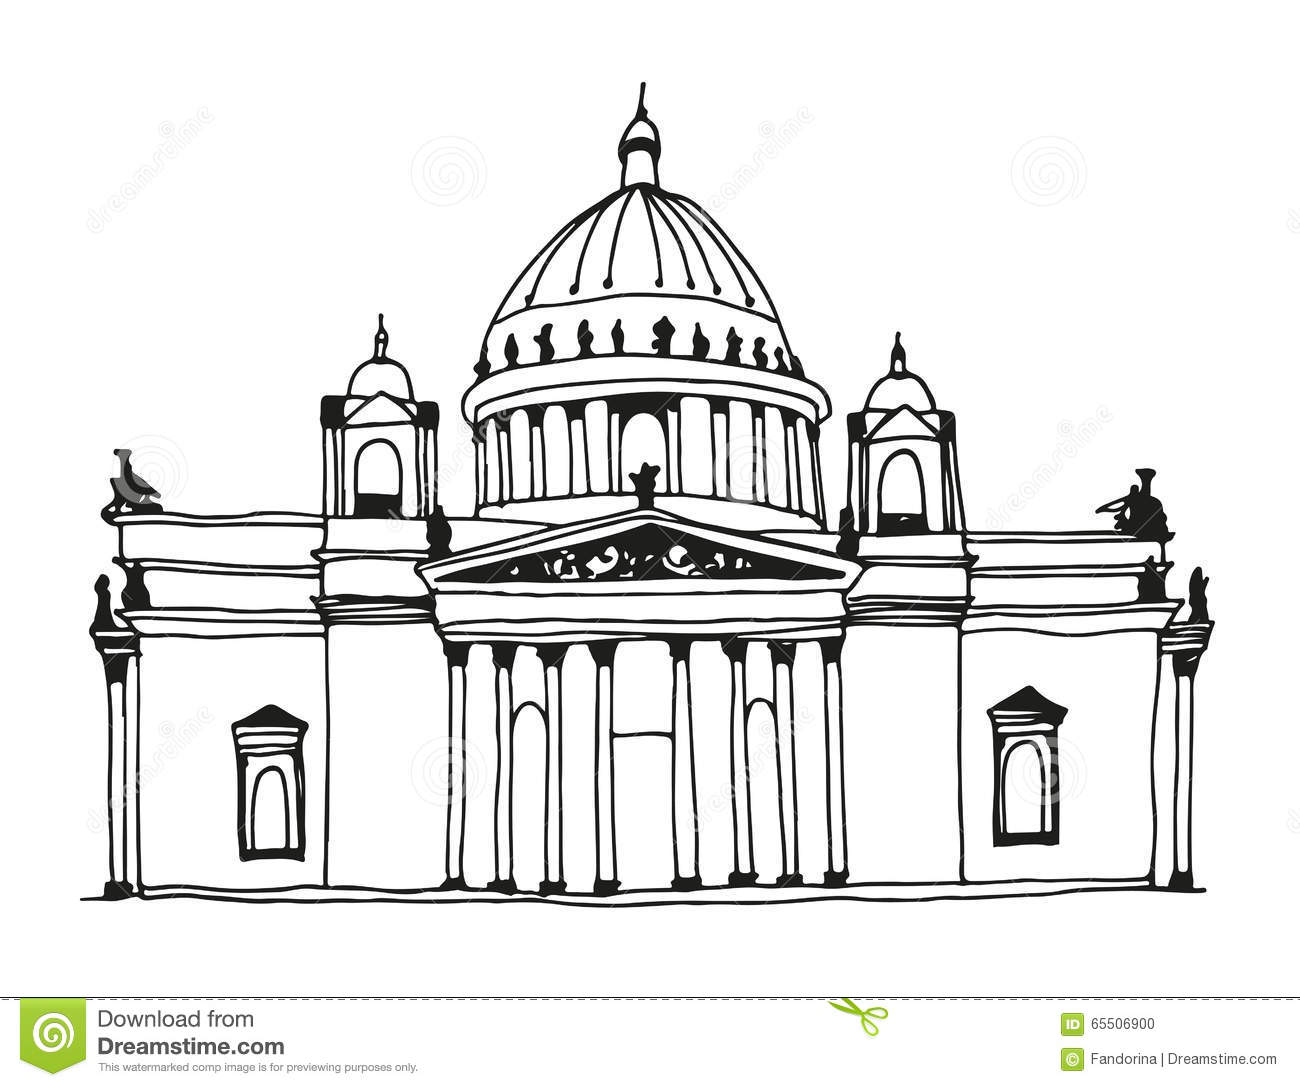 Hand Drawn Saint Isaac's Cathedral In Saint Petersburg, Russia.